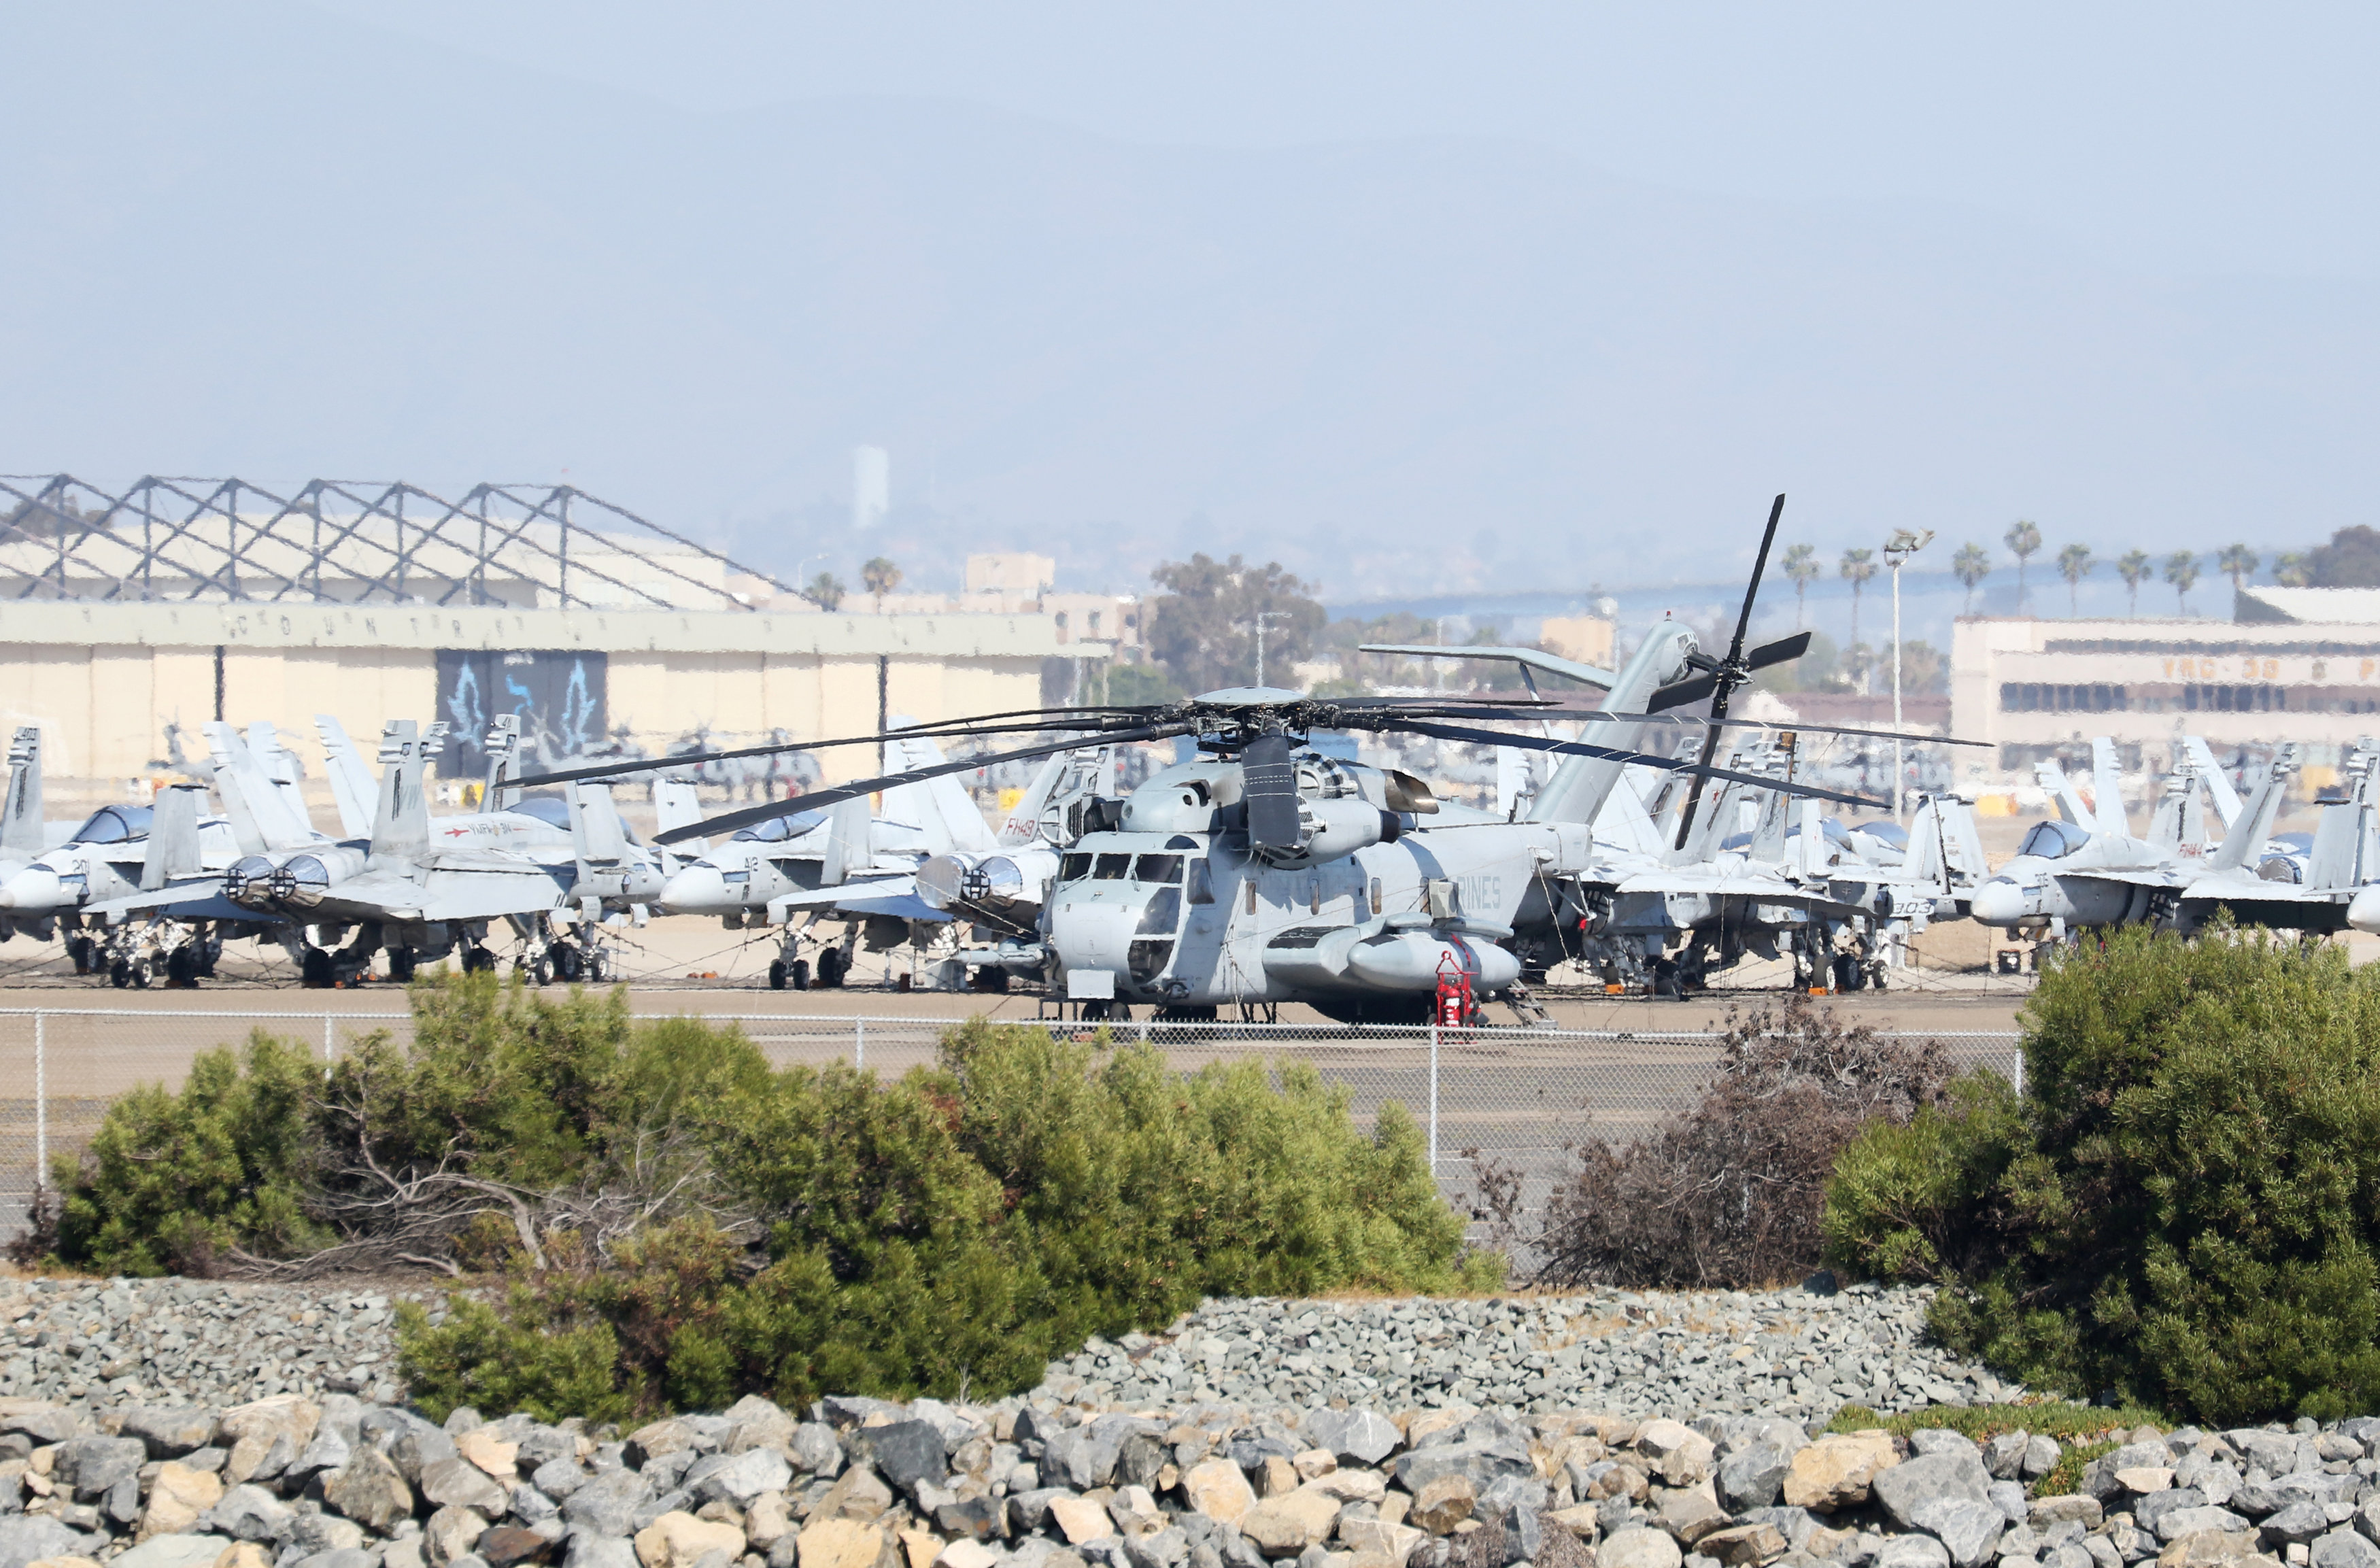 FILE PHOTO: A United States Marine Corps CH-53E Super Stallion Helicopter sits at North Island Naval Air Station Coronado, California, April 12, 2015. REUTERS/Louis Nastro/File Photo